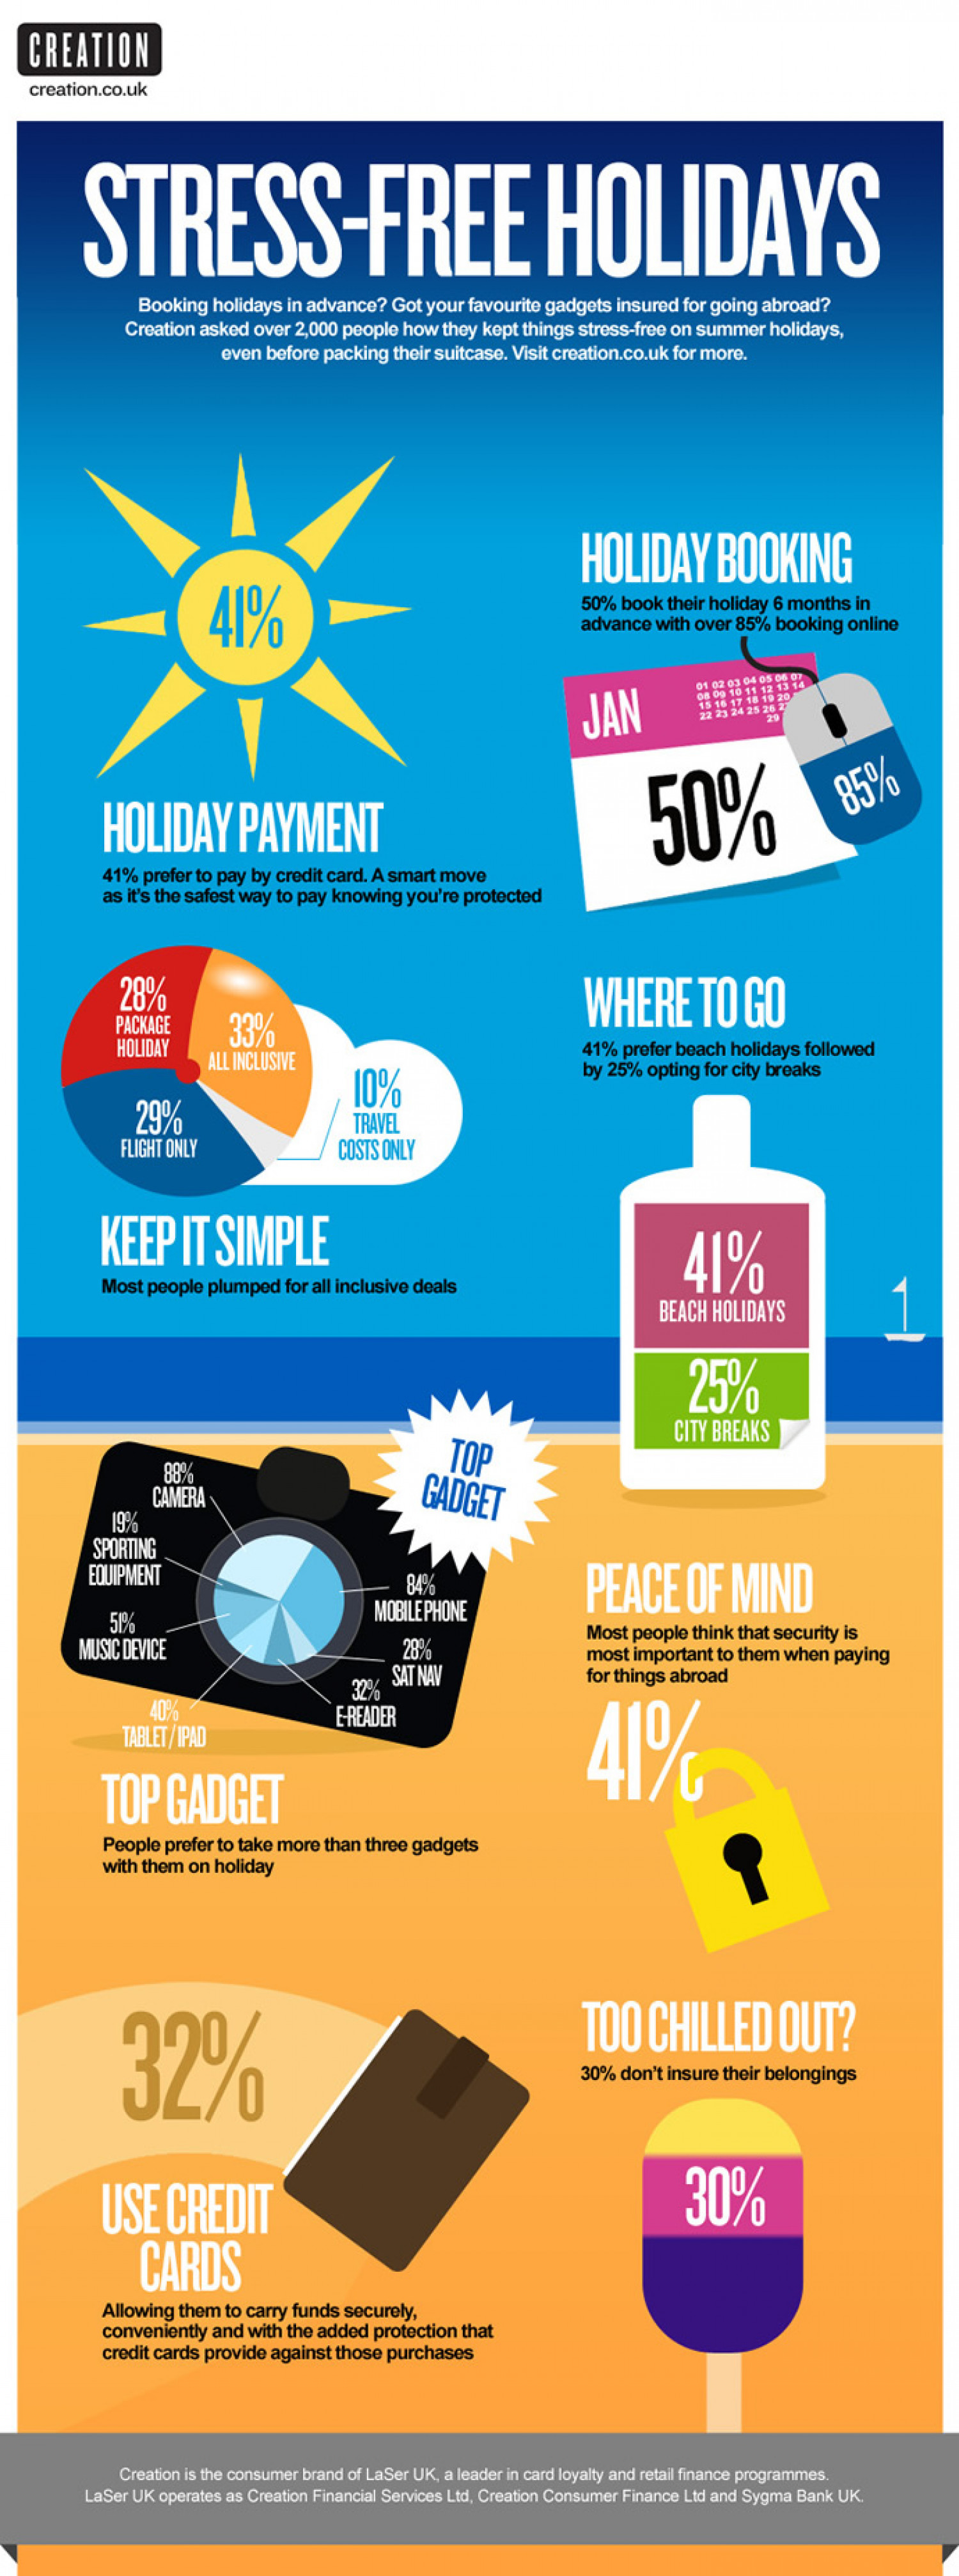 Stress Free Holidays by Creation Infographic